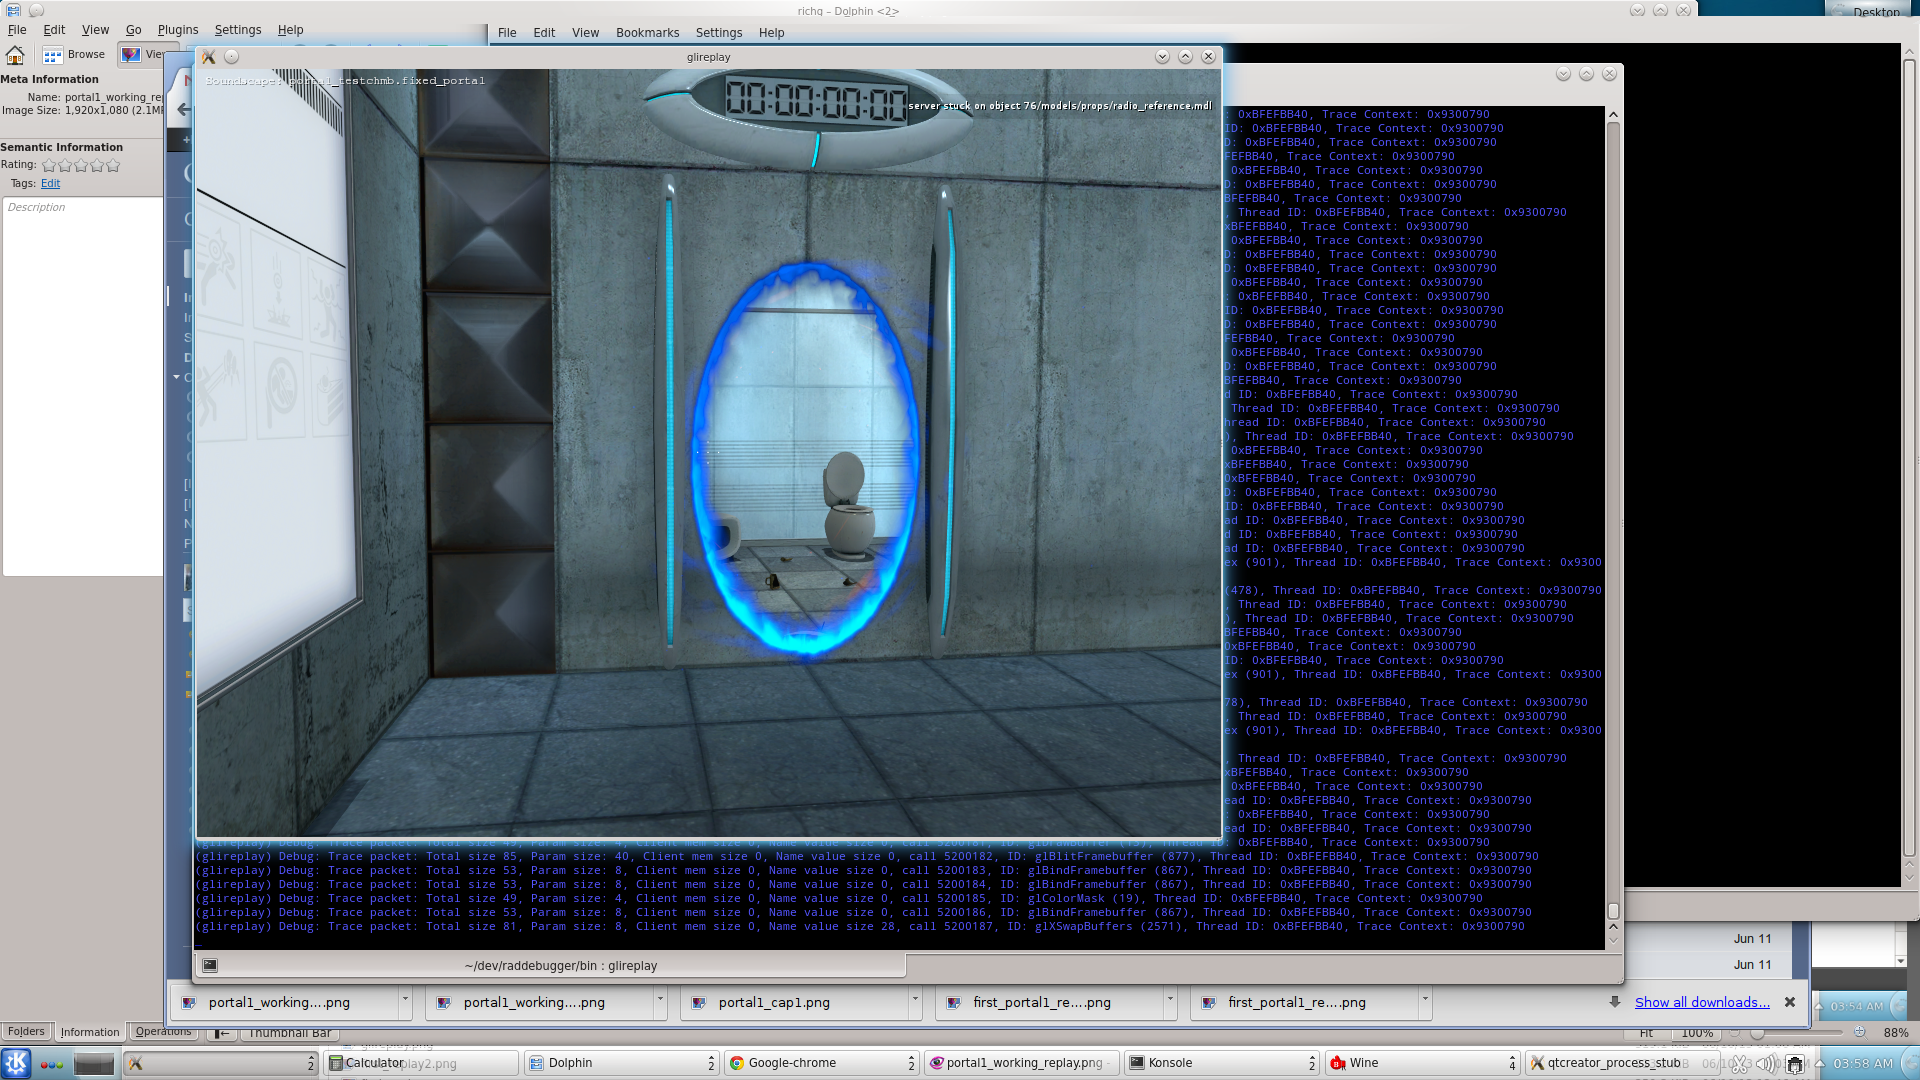 Resume 3 d graphics opengl direct linux